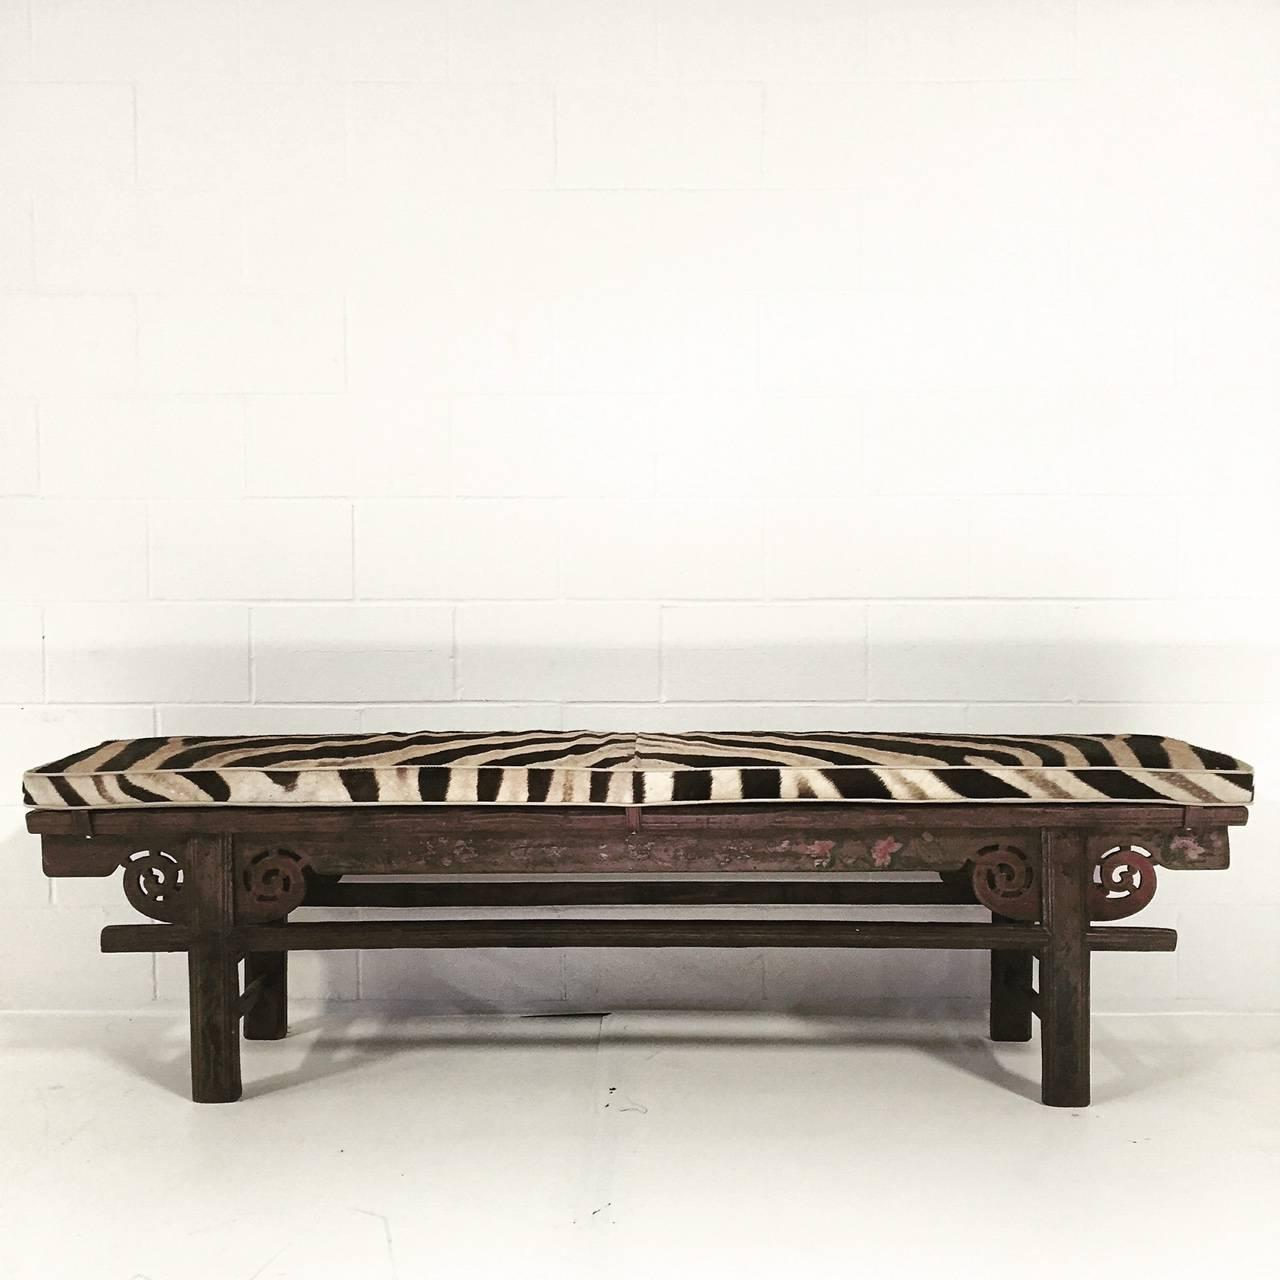 Vintage Chinese Painted Farmhouse Bench with Zebra Hide Cushion at 1stdibs